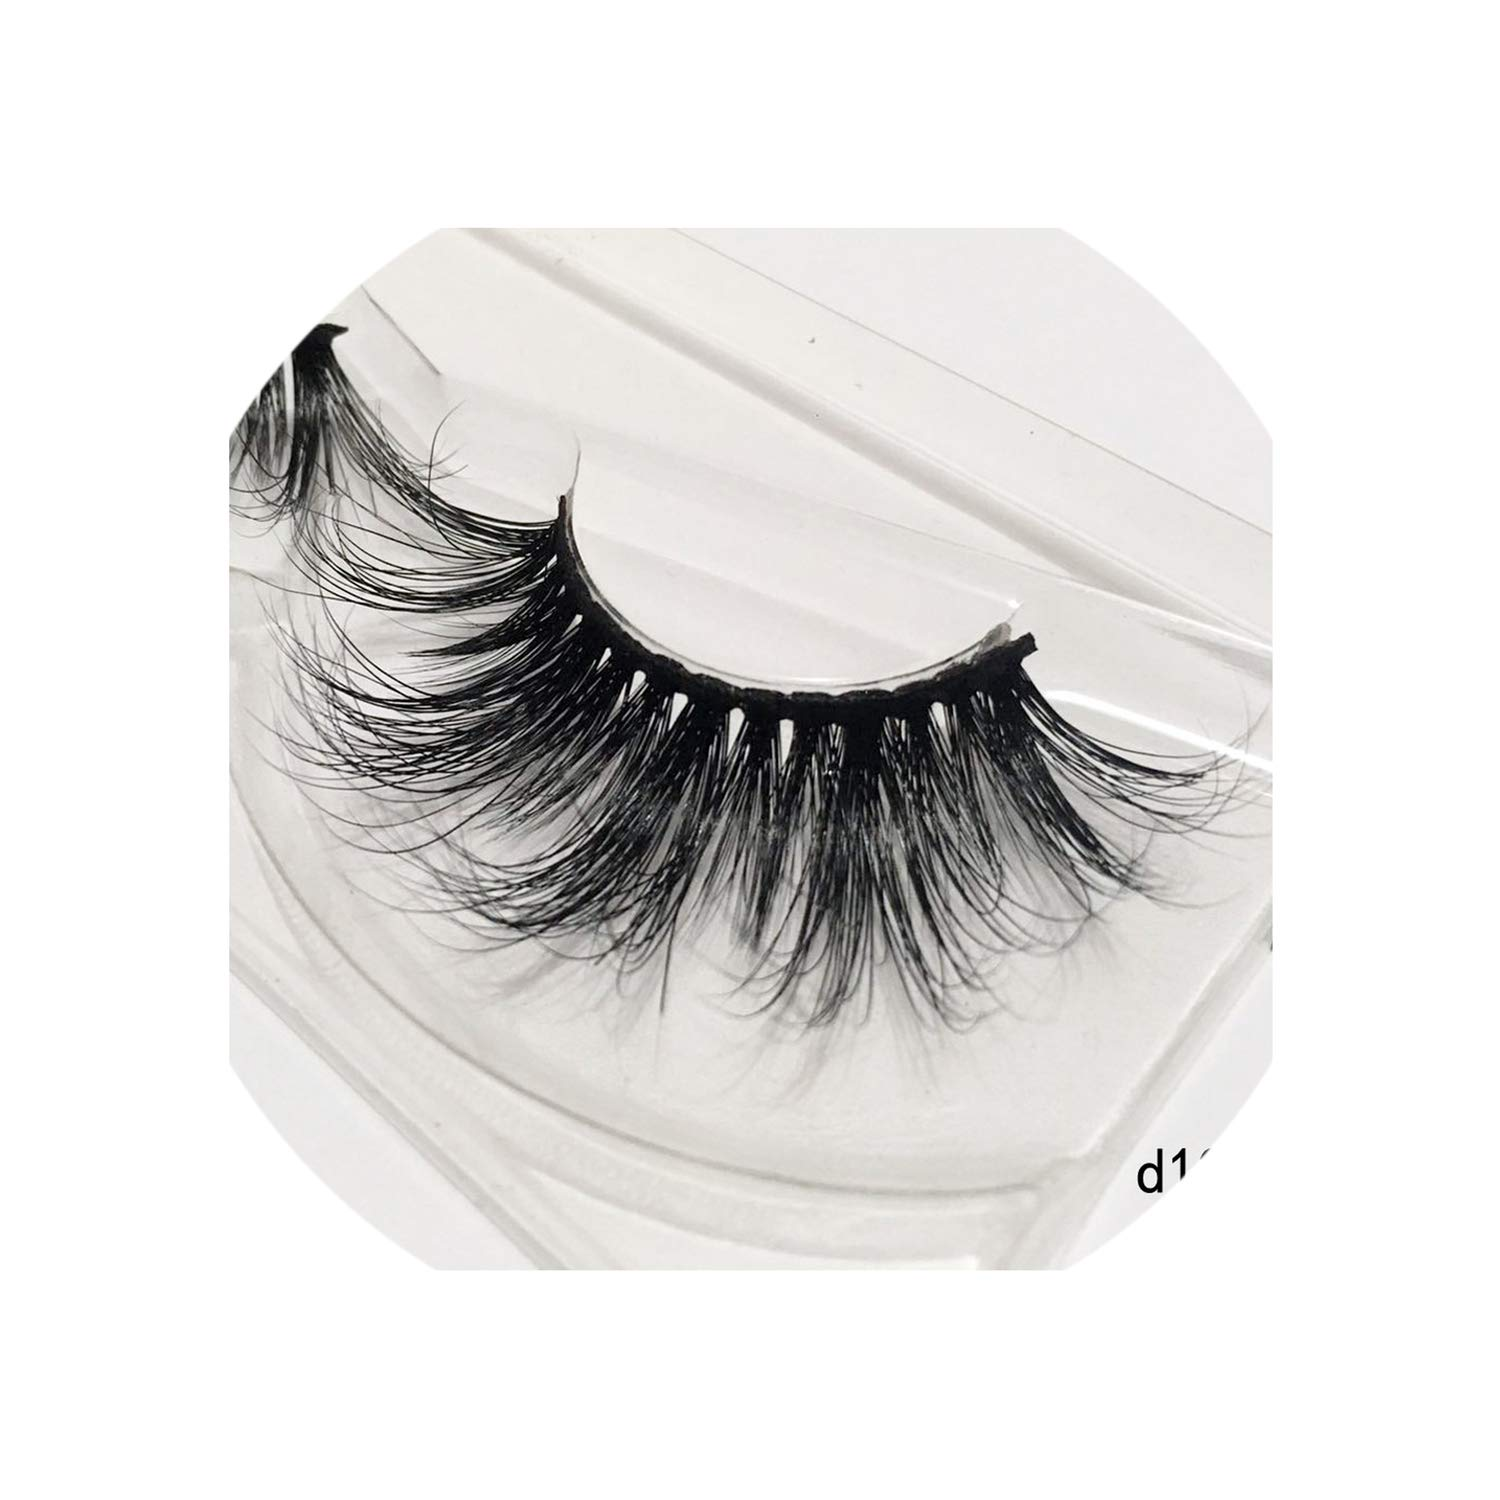 30 pairs 3d mink lashes mix false eyelashes faux cils fake full strip with tray no packaging box eye lashes vendors,D12 30pairs 61aEmjbZCfL